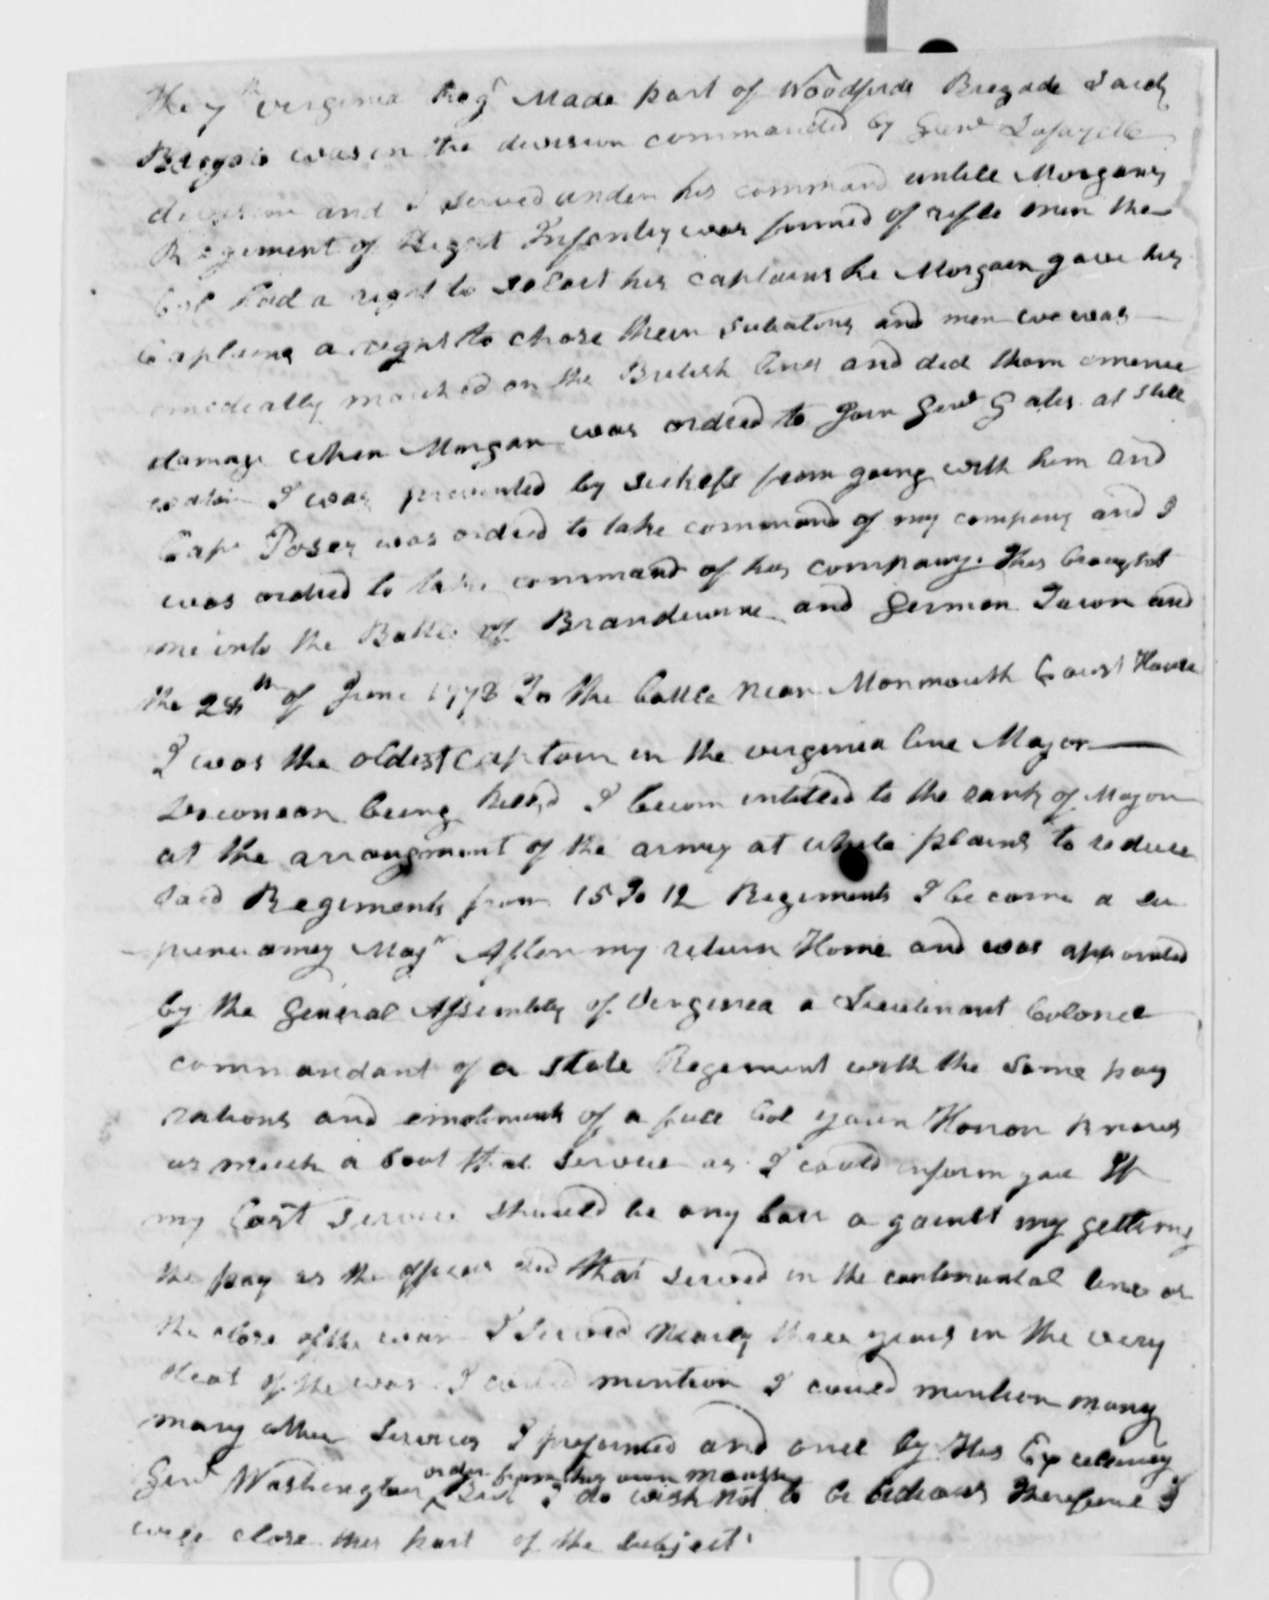 Joseph Crockett to Thomas Jefferson, November 1, 1825, with Copy of Letter from Lafayette to Crockett Dated September 3